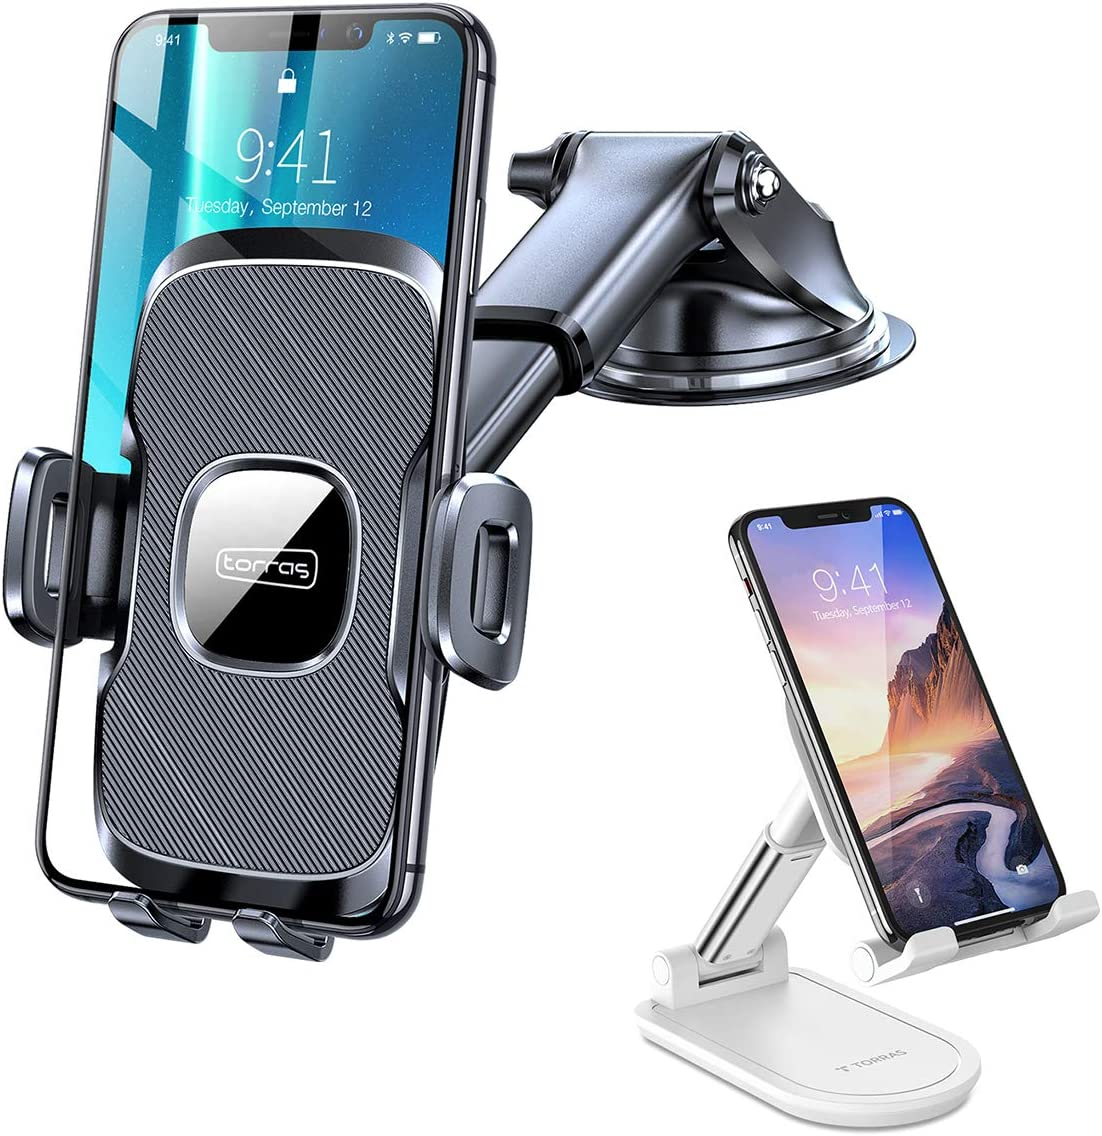 TORRAS Ultra-Durable Cell Phone Holder + Foldable Cell Phone Stand for Desk for Home/Office Compatible with iPhone 11 pro max xr x 8 Samsung Galaxy Note 20 Ultra 10 Plus S20